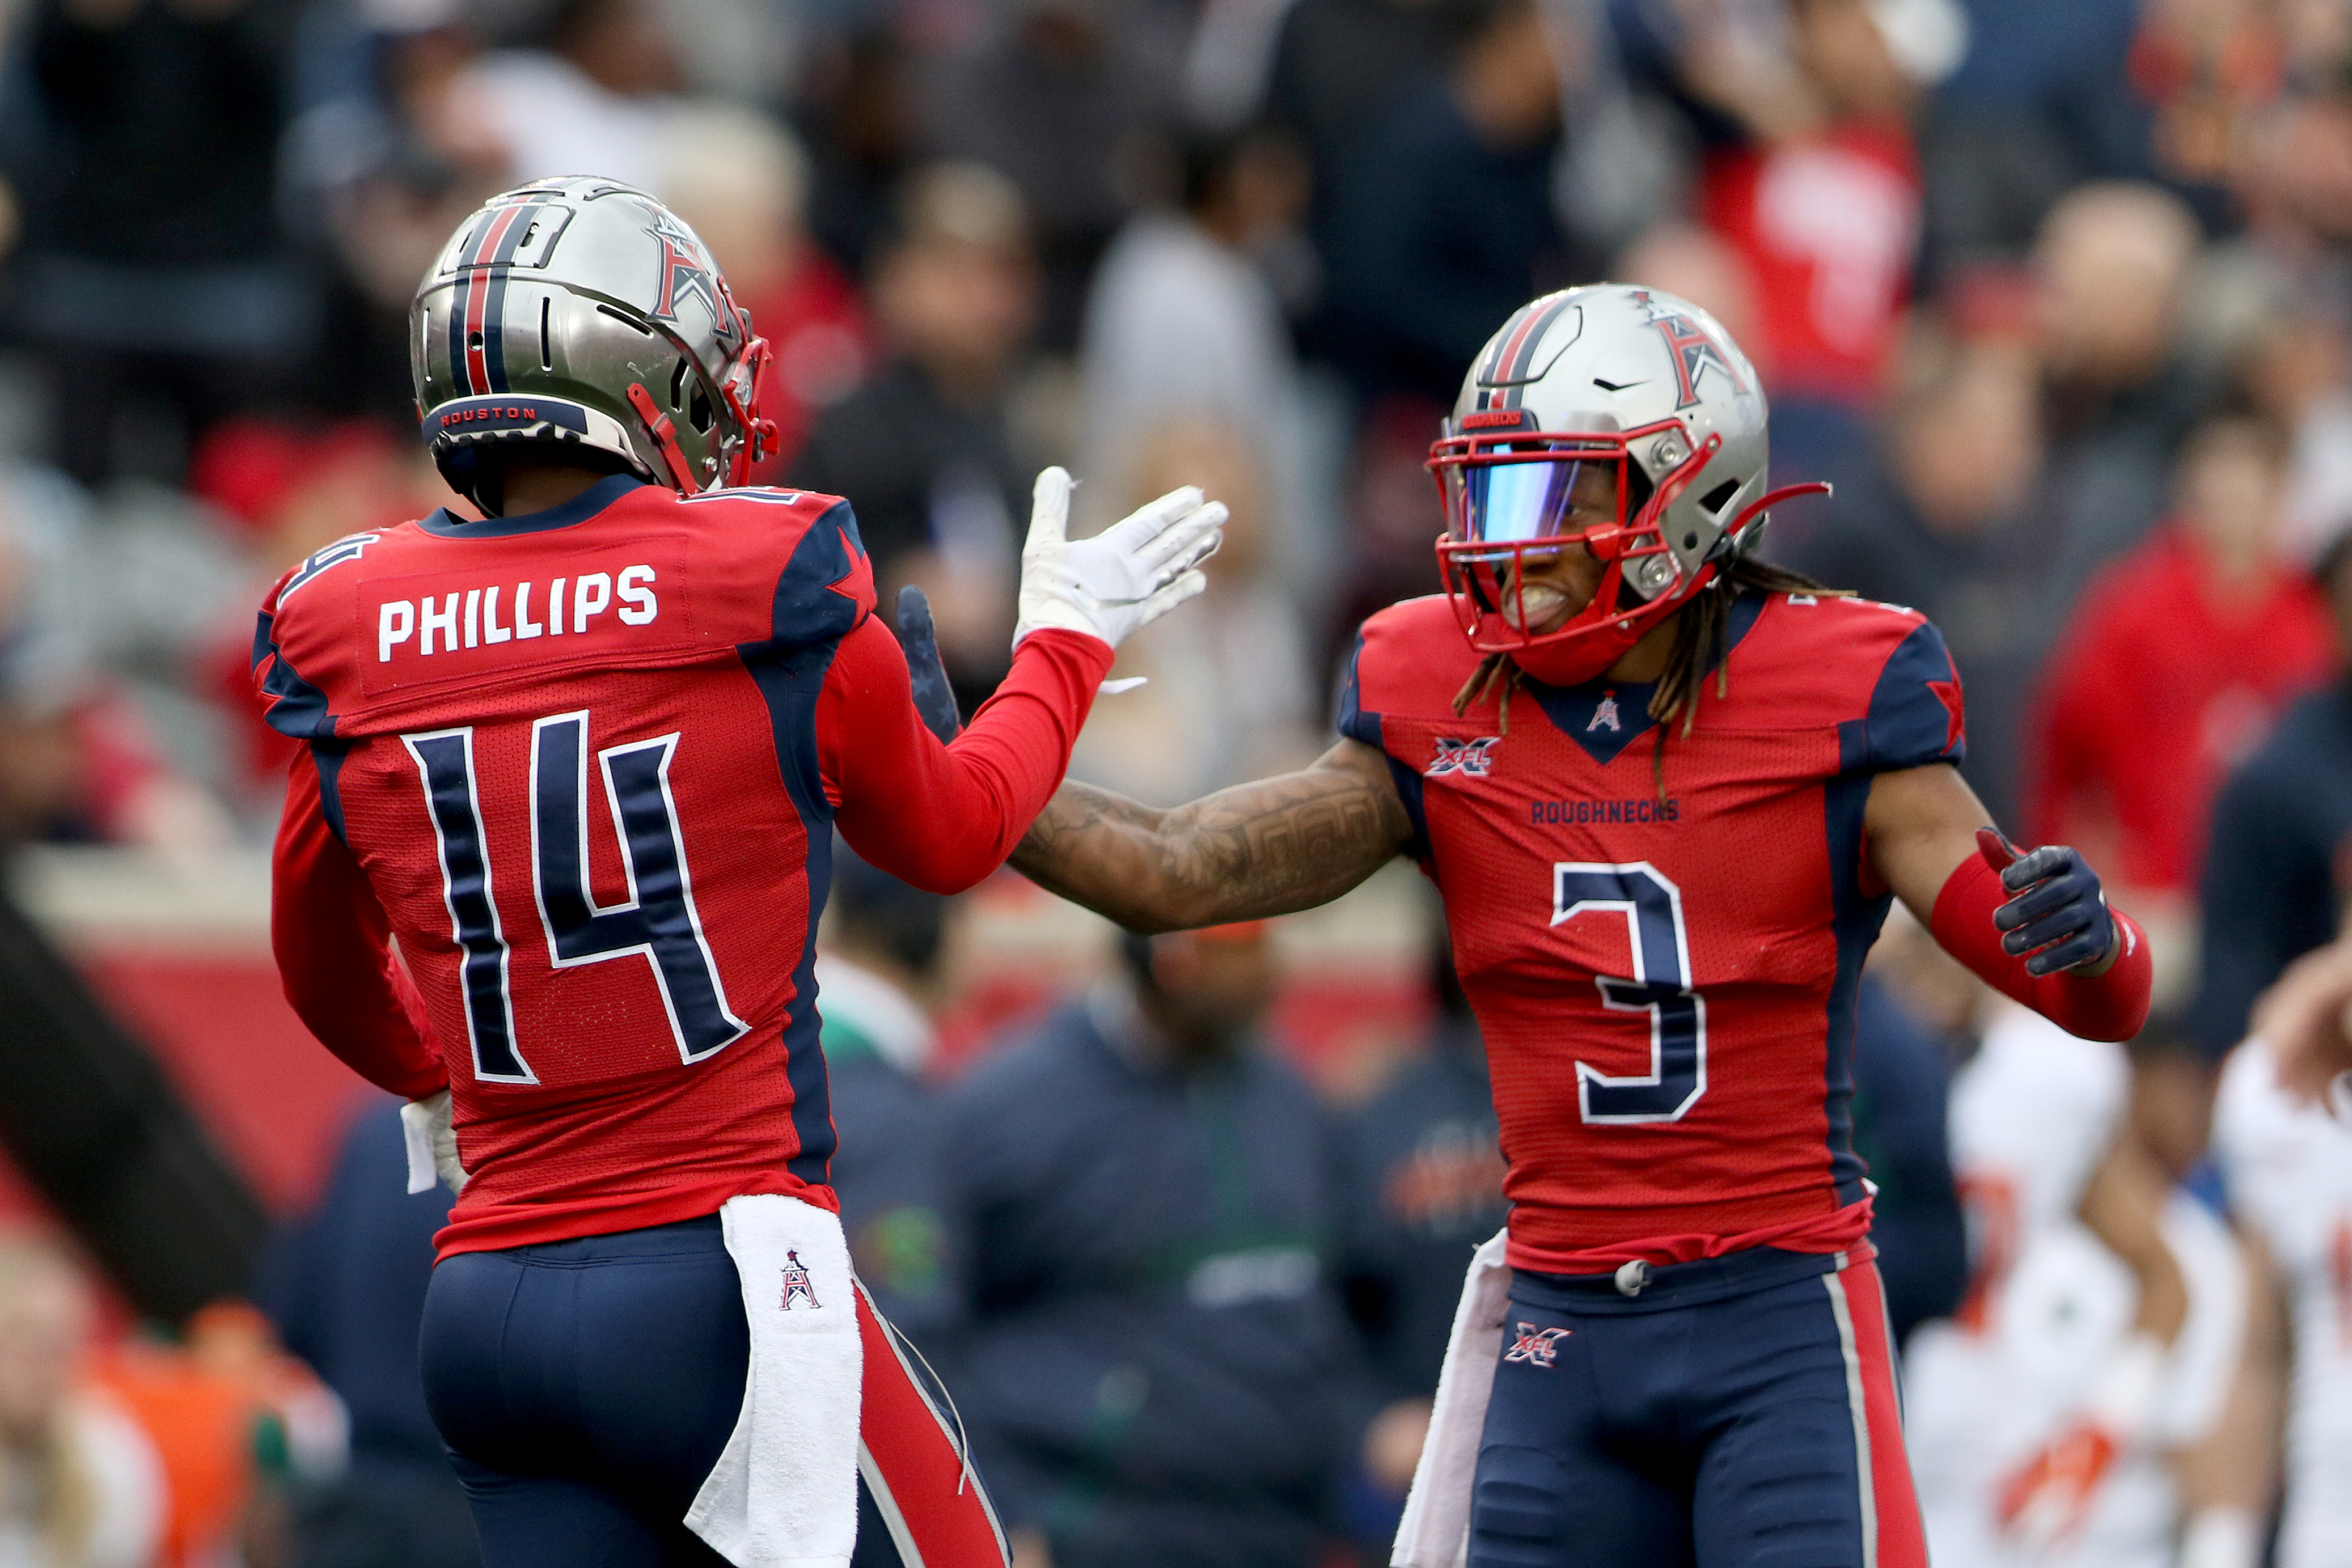 Cam Phillips #14 of the Houston Roughnecks with Sam Mobley #3 during the XFL game against the Seattle Dragons at TDECU Stadium on March 7, 2020 in Houston, Texas.